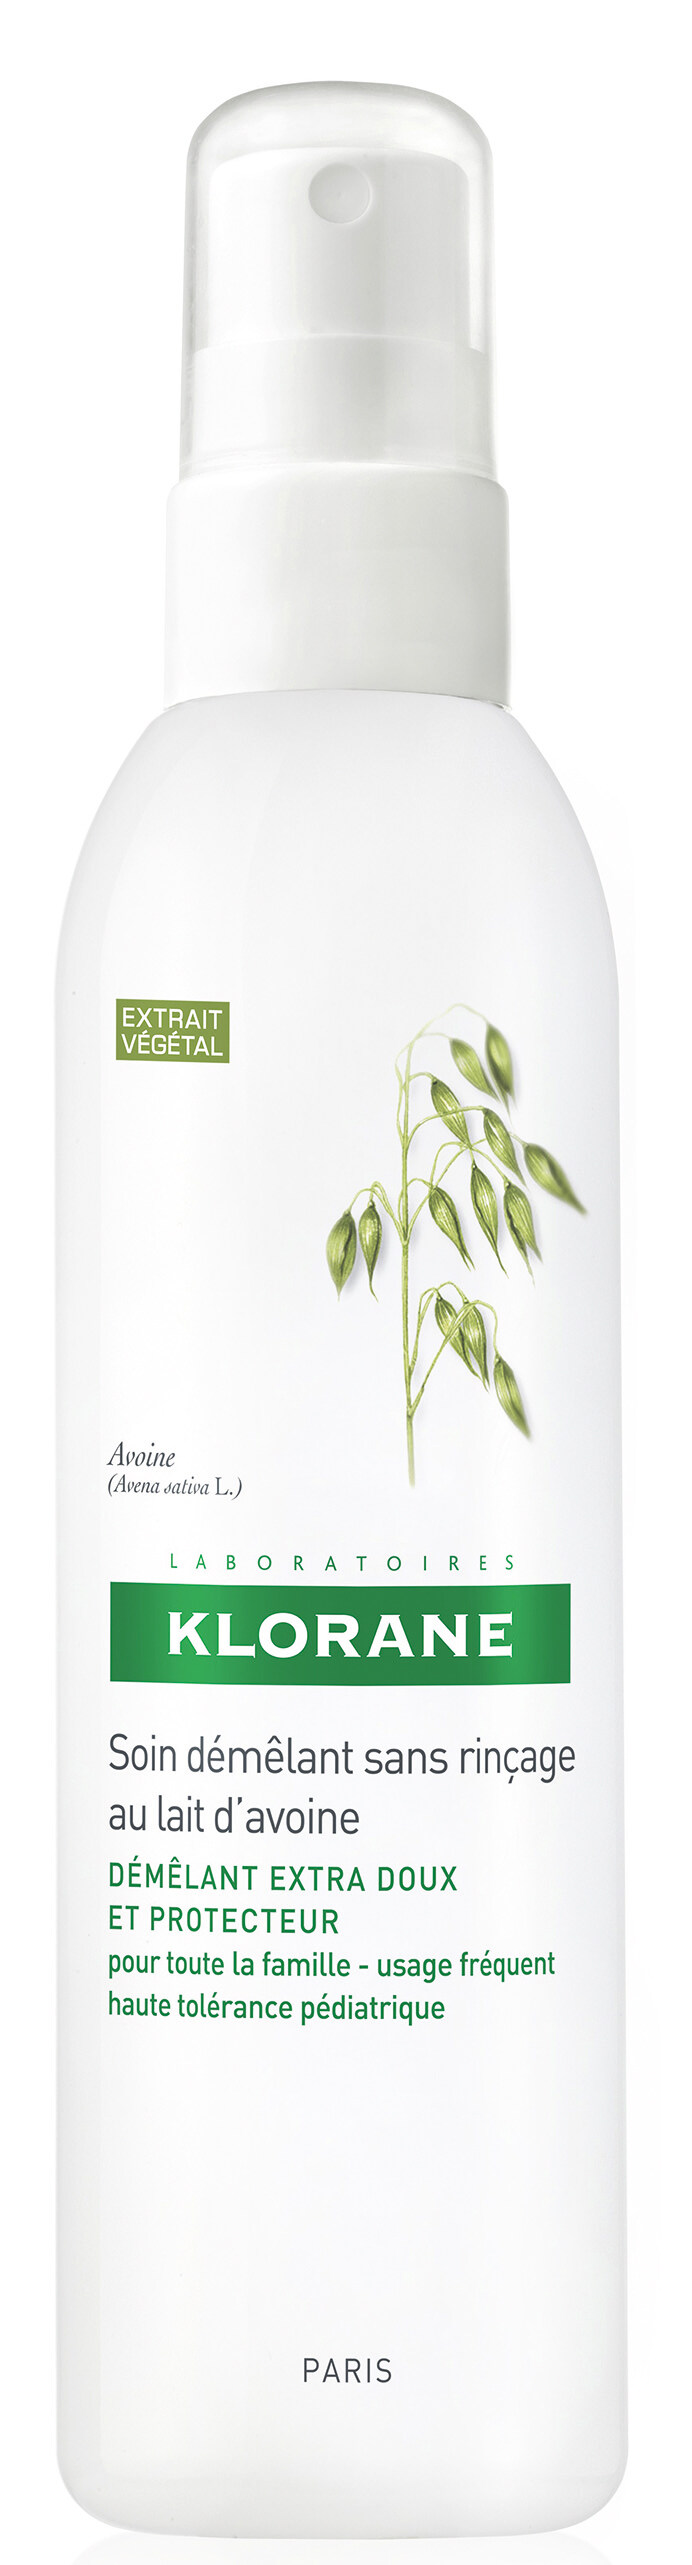 Klorane Leave-in Detangling Spray with Oat Milk($190)